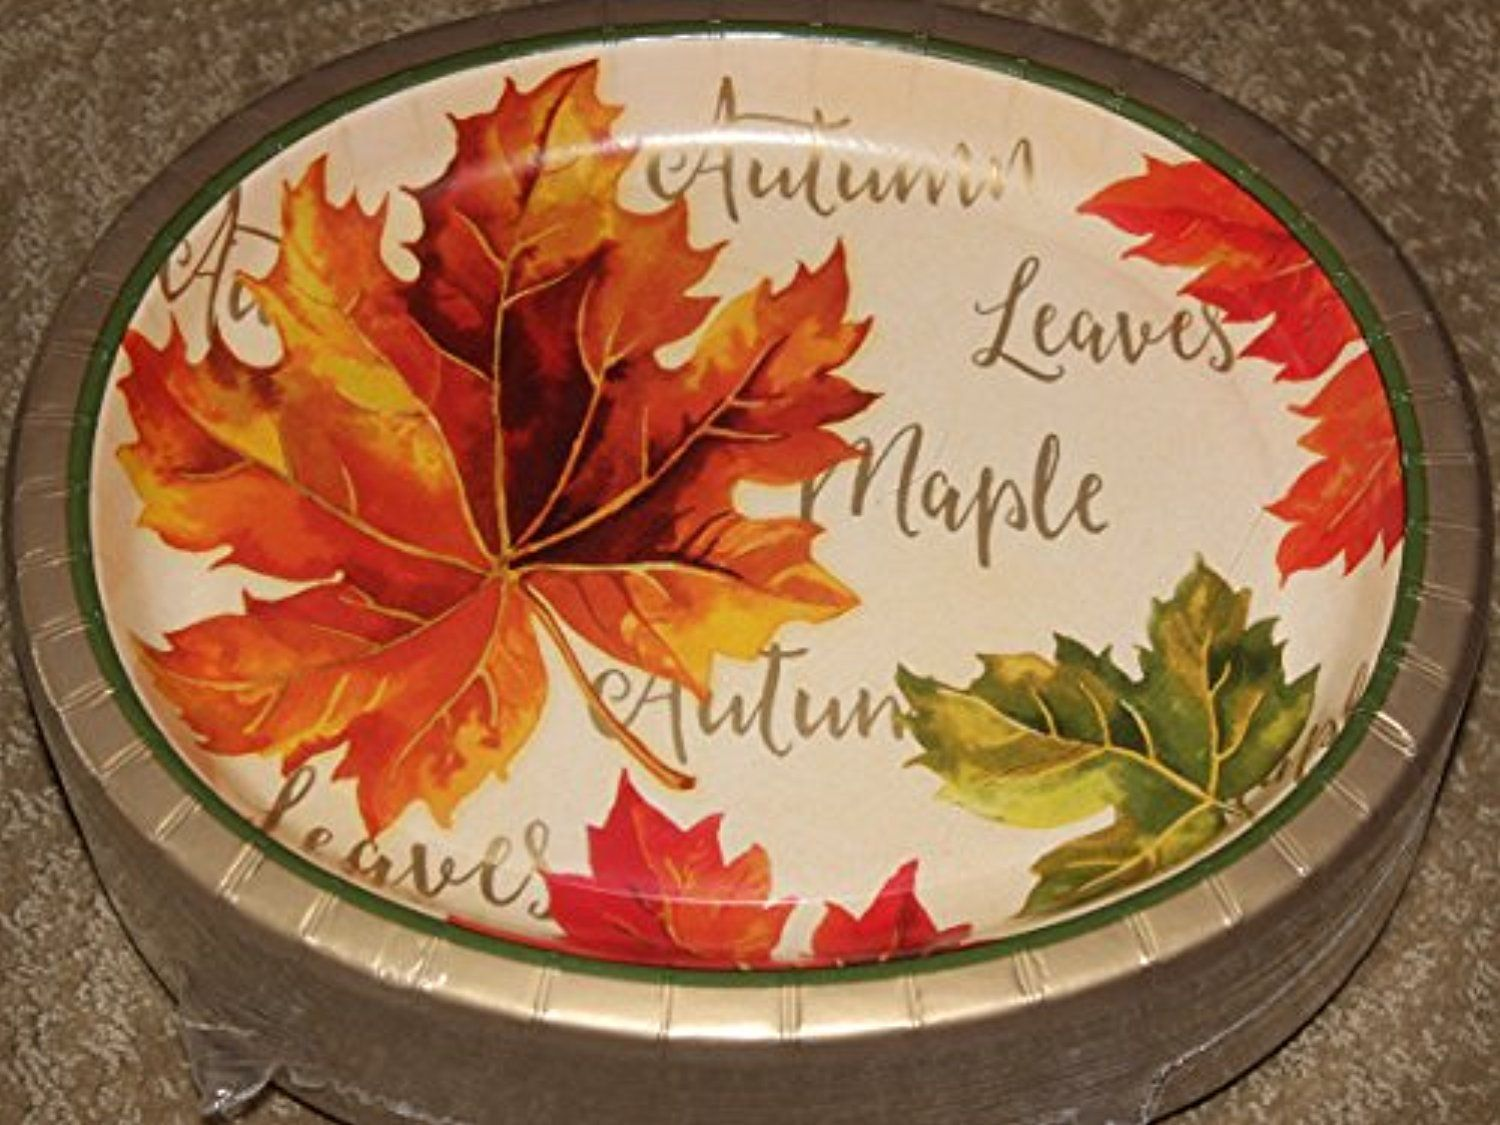 Thanksgiving Autumn Leaves Oval Paper Plates (Large) - X - 50 Ct Per Package Thanksgiving Paper Plates - Pack of 50 - x Oval Dinner plates. & Thanksgiving Autumn Leaves Oval Paper Plates (Large) - 10